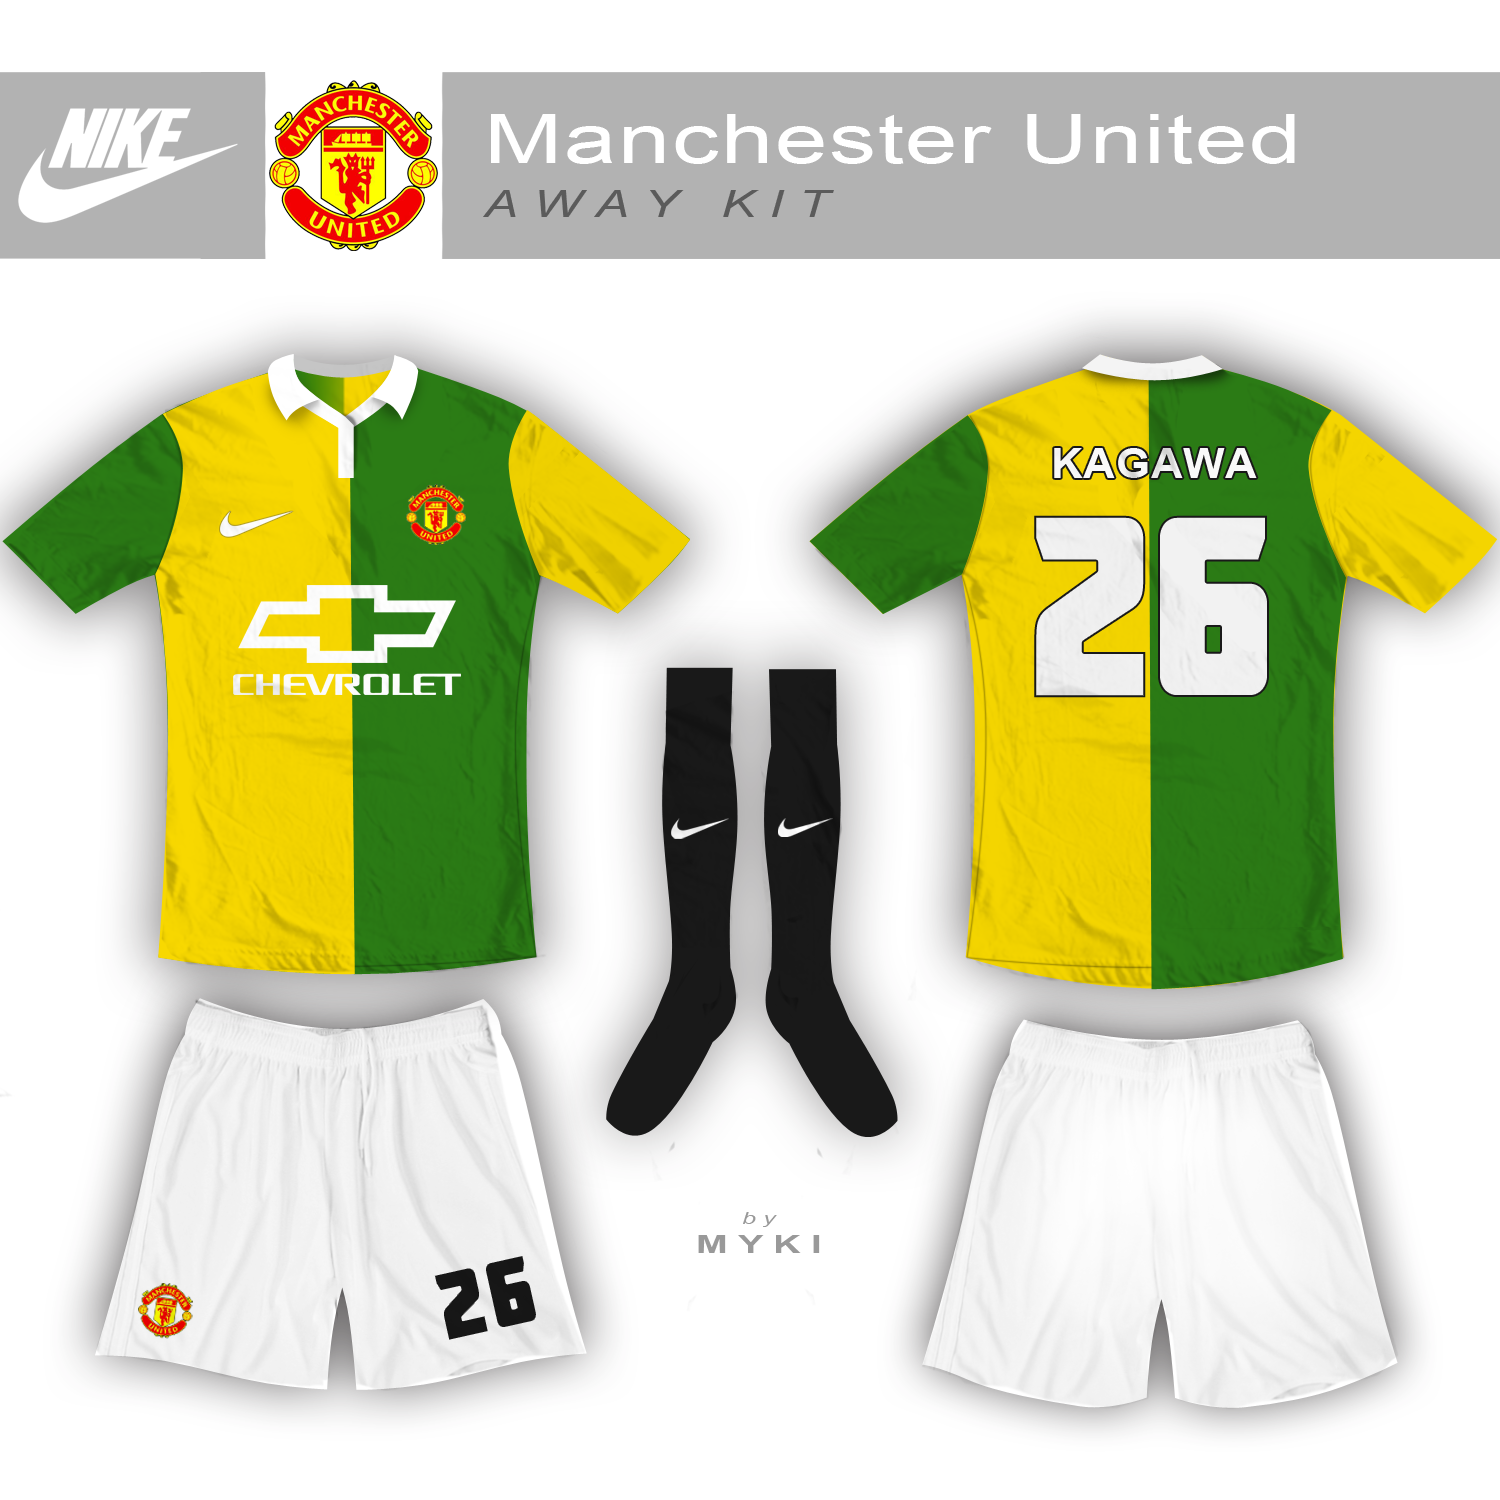 81b127a62 Manchester united Away Kit